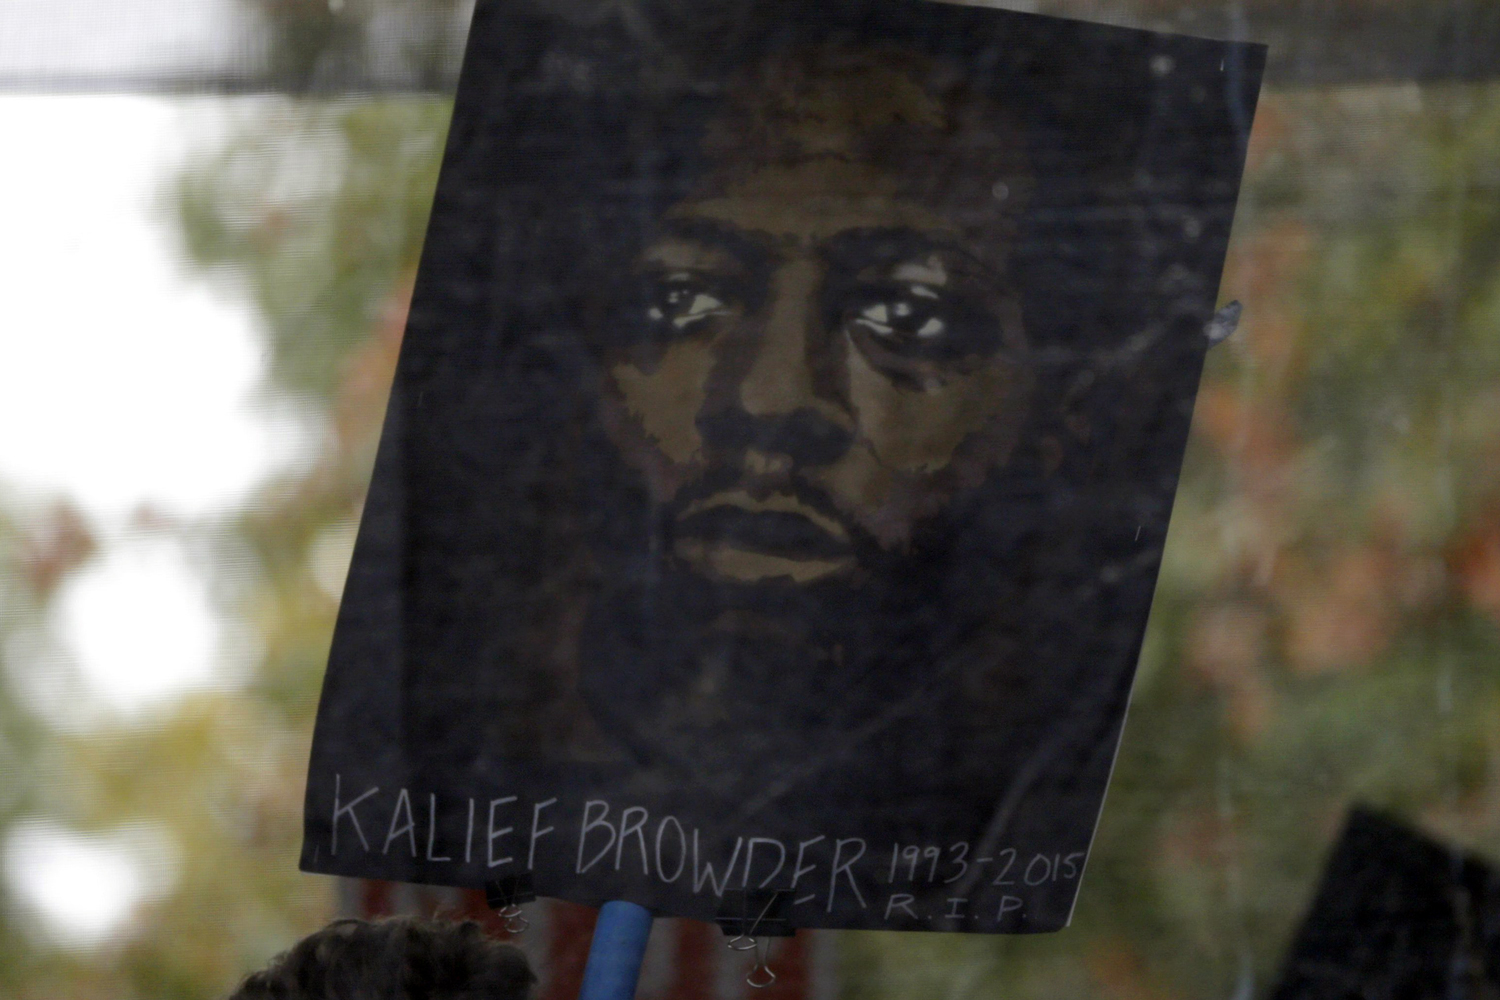 A Protester Holds a Picture Kalief Browder who Committed Suicide After Spending Three Years at Rikers Island Prison As a Teenager Attends a Rally Before Participating in a Protest March Calling For 'Stop Police Terror and Murder' in New York New York Usa 24 October 2015 United States New YorkUsa Protest March Police - Oct 2015